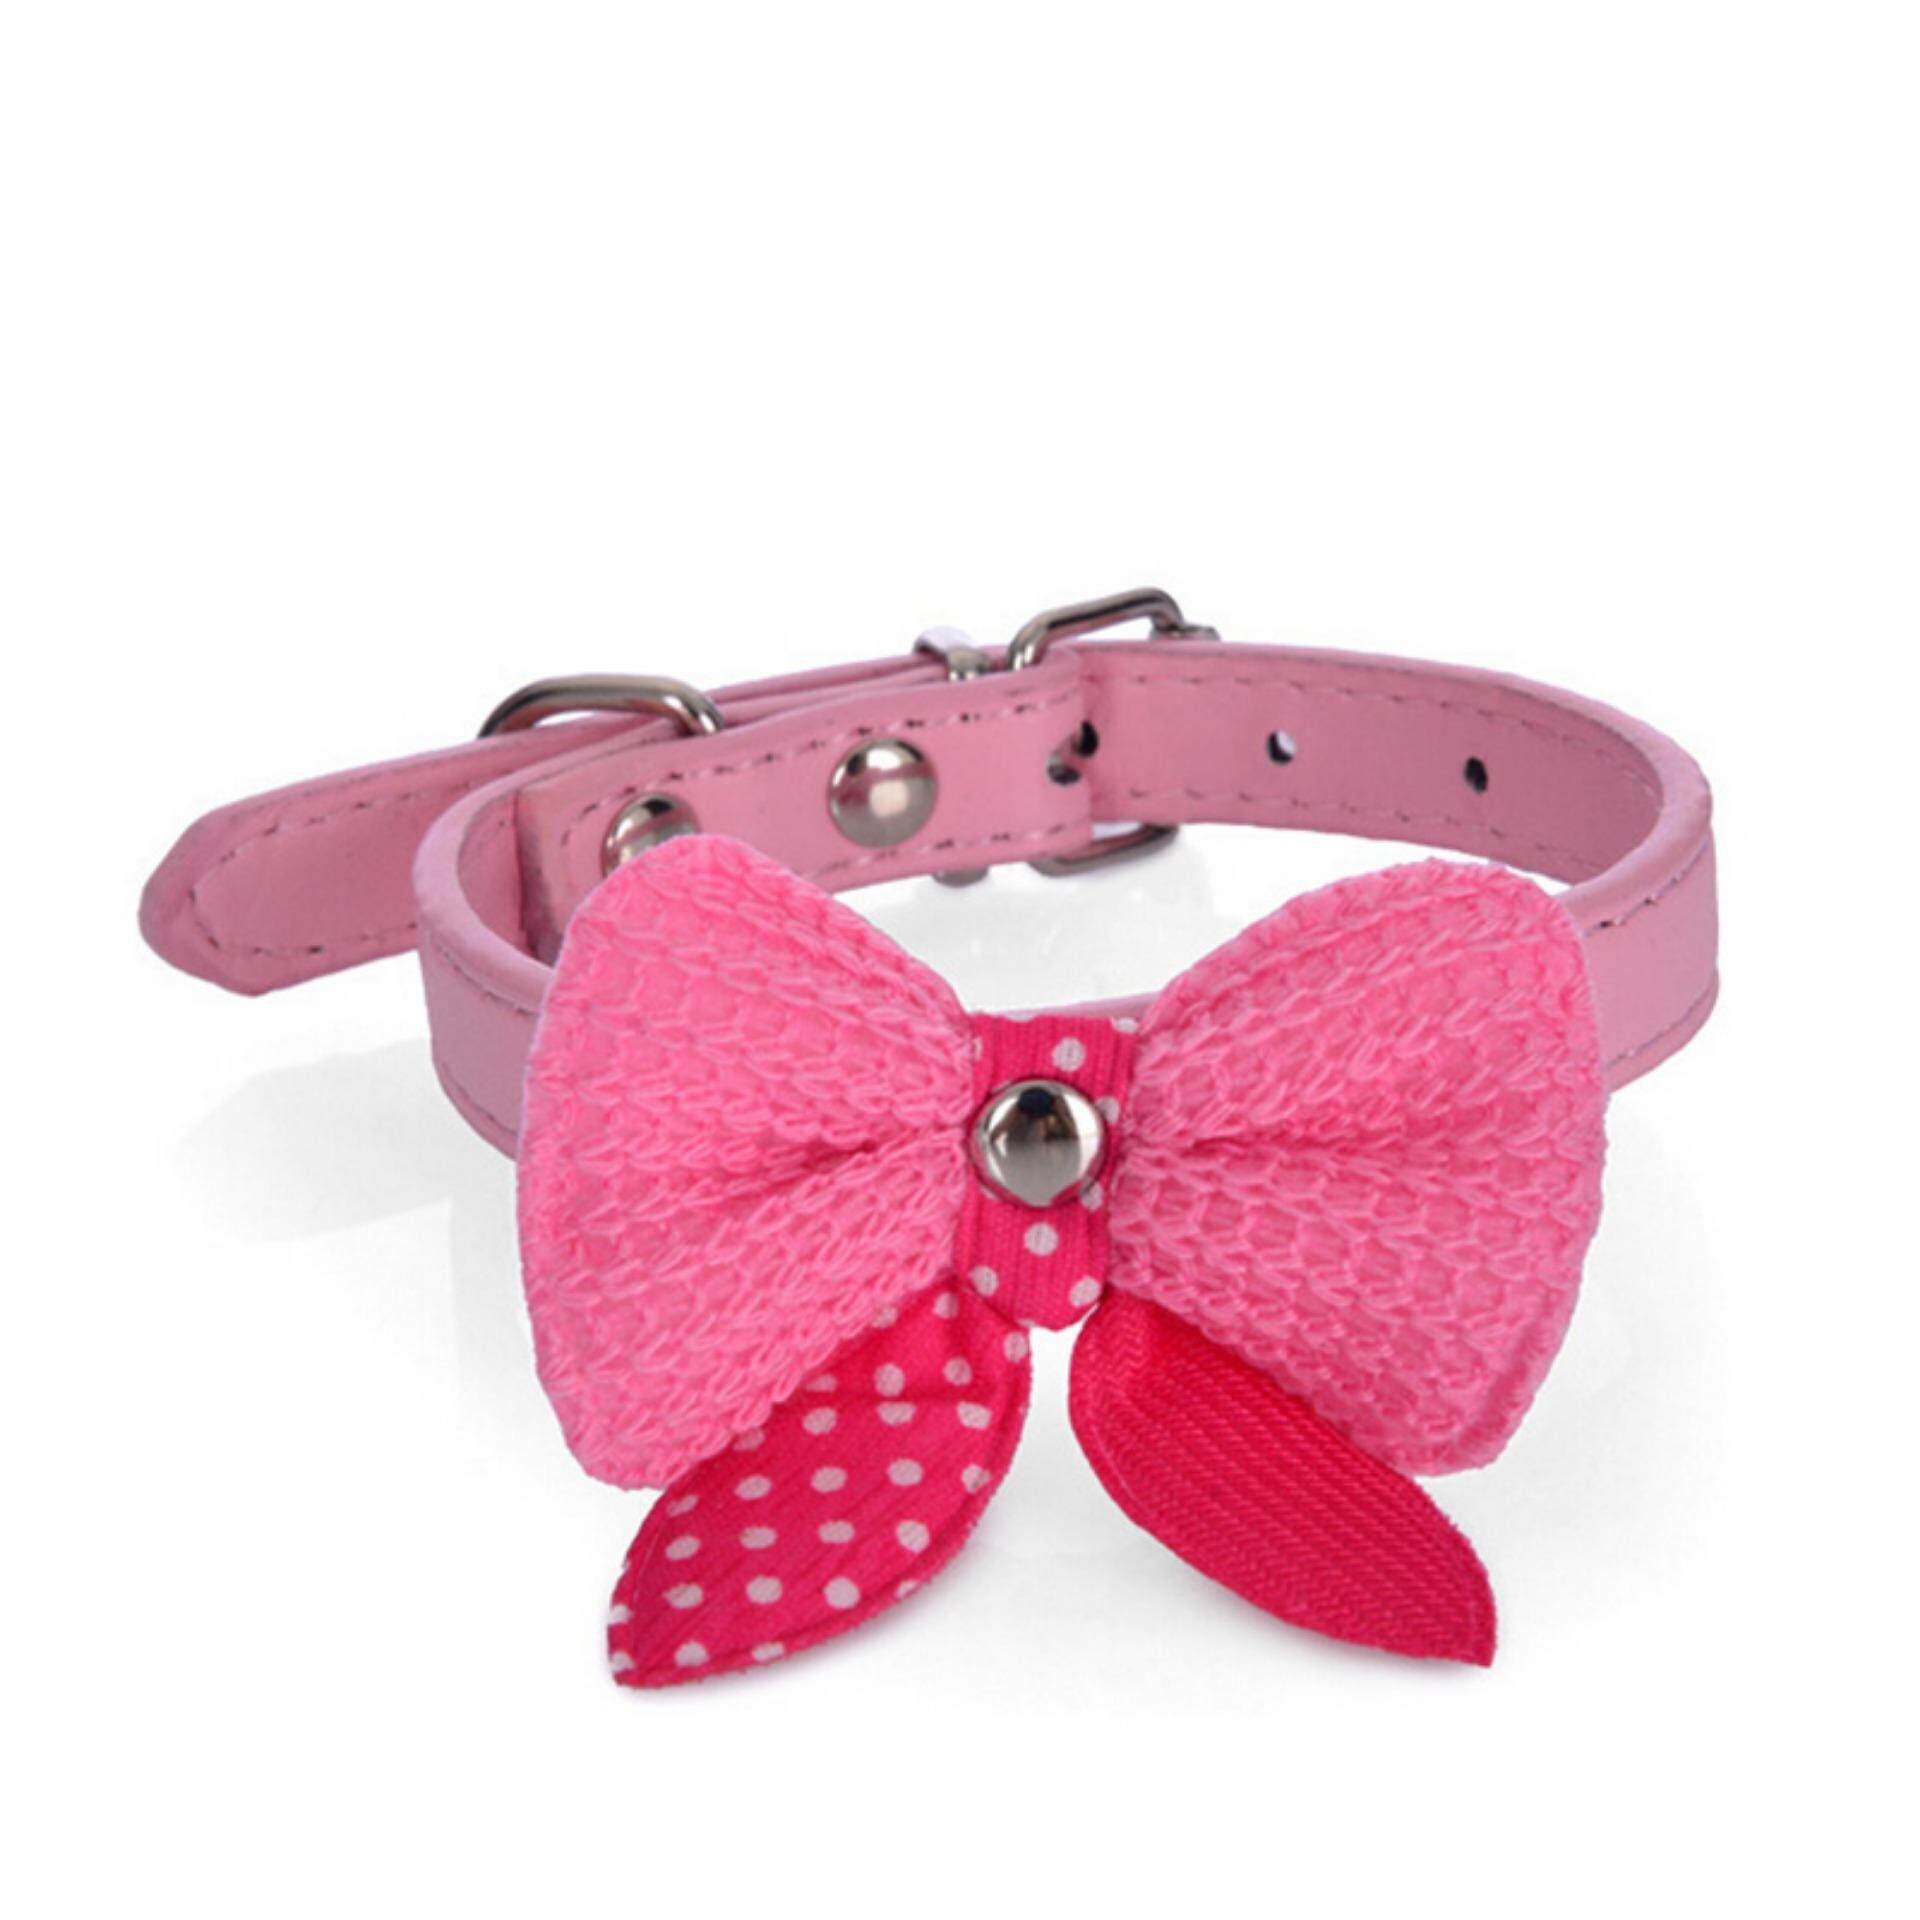 Bowknot Adjustable Pu Leather Dog Puppy Pet Cat Collars Necklace Neck Lace Pink Size:xs By Variety Grace.